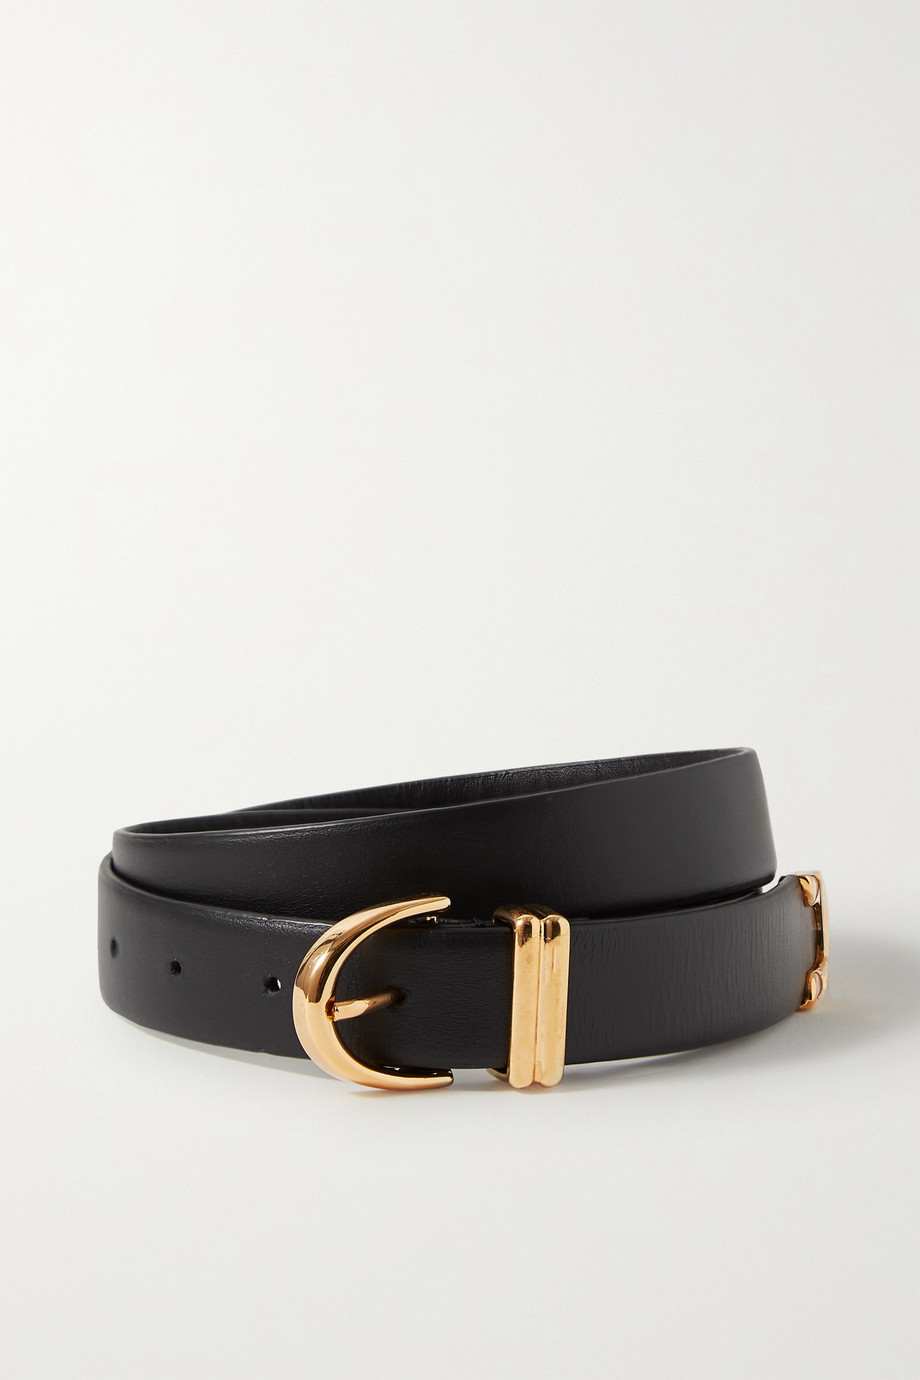 Khaite Bambi leather belt